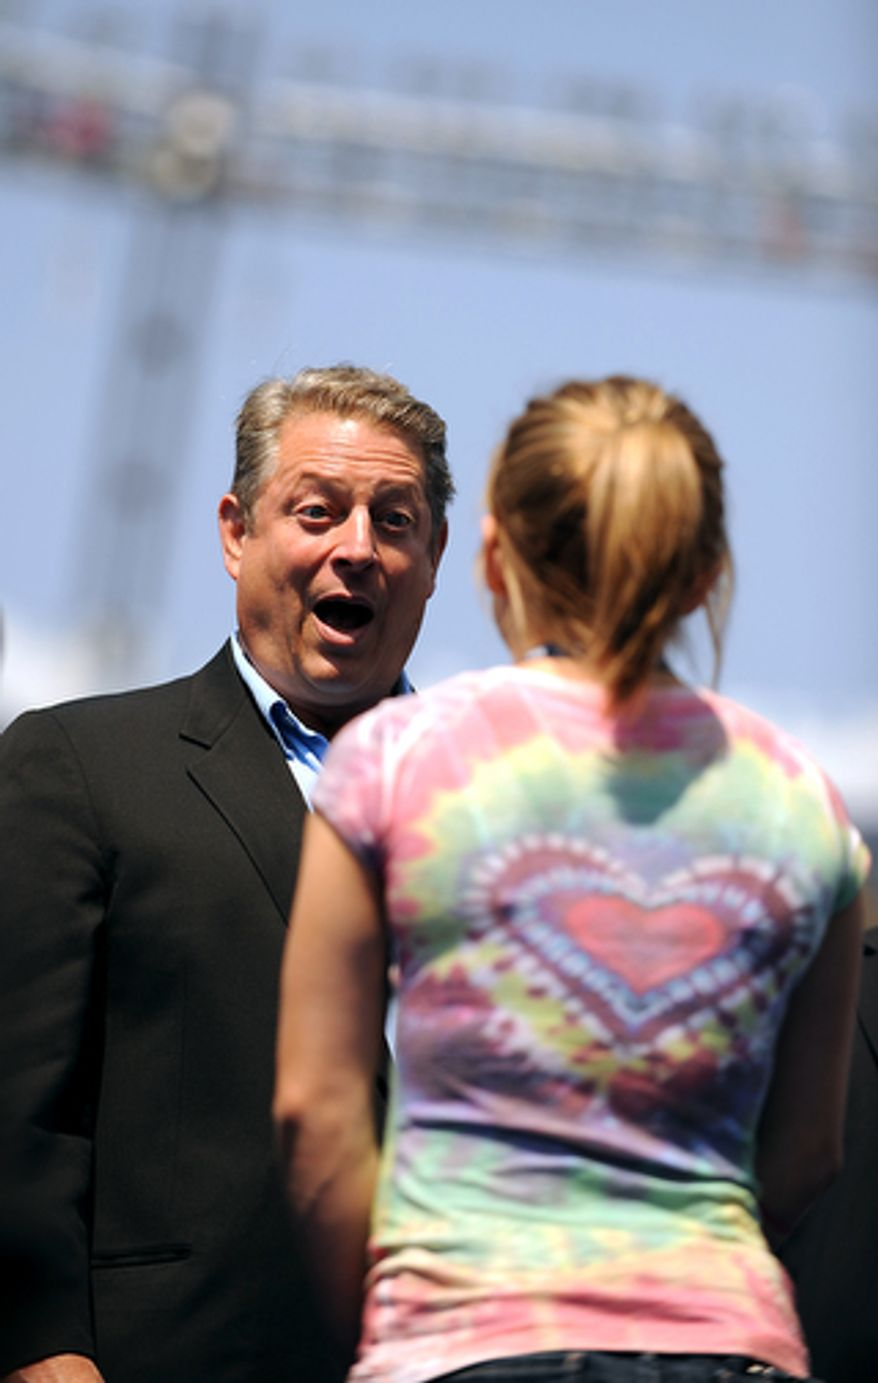 Former Vice President Al Gore meets Olympic gold-medalist Shawn Johnson at Invesco Field. (Allison Shelley/The Washington Times)